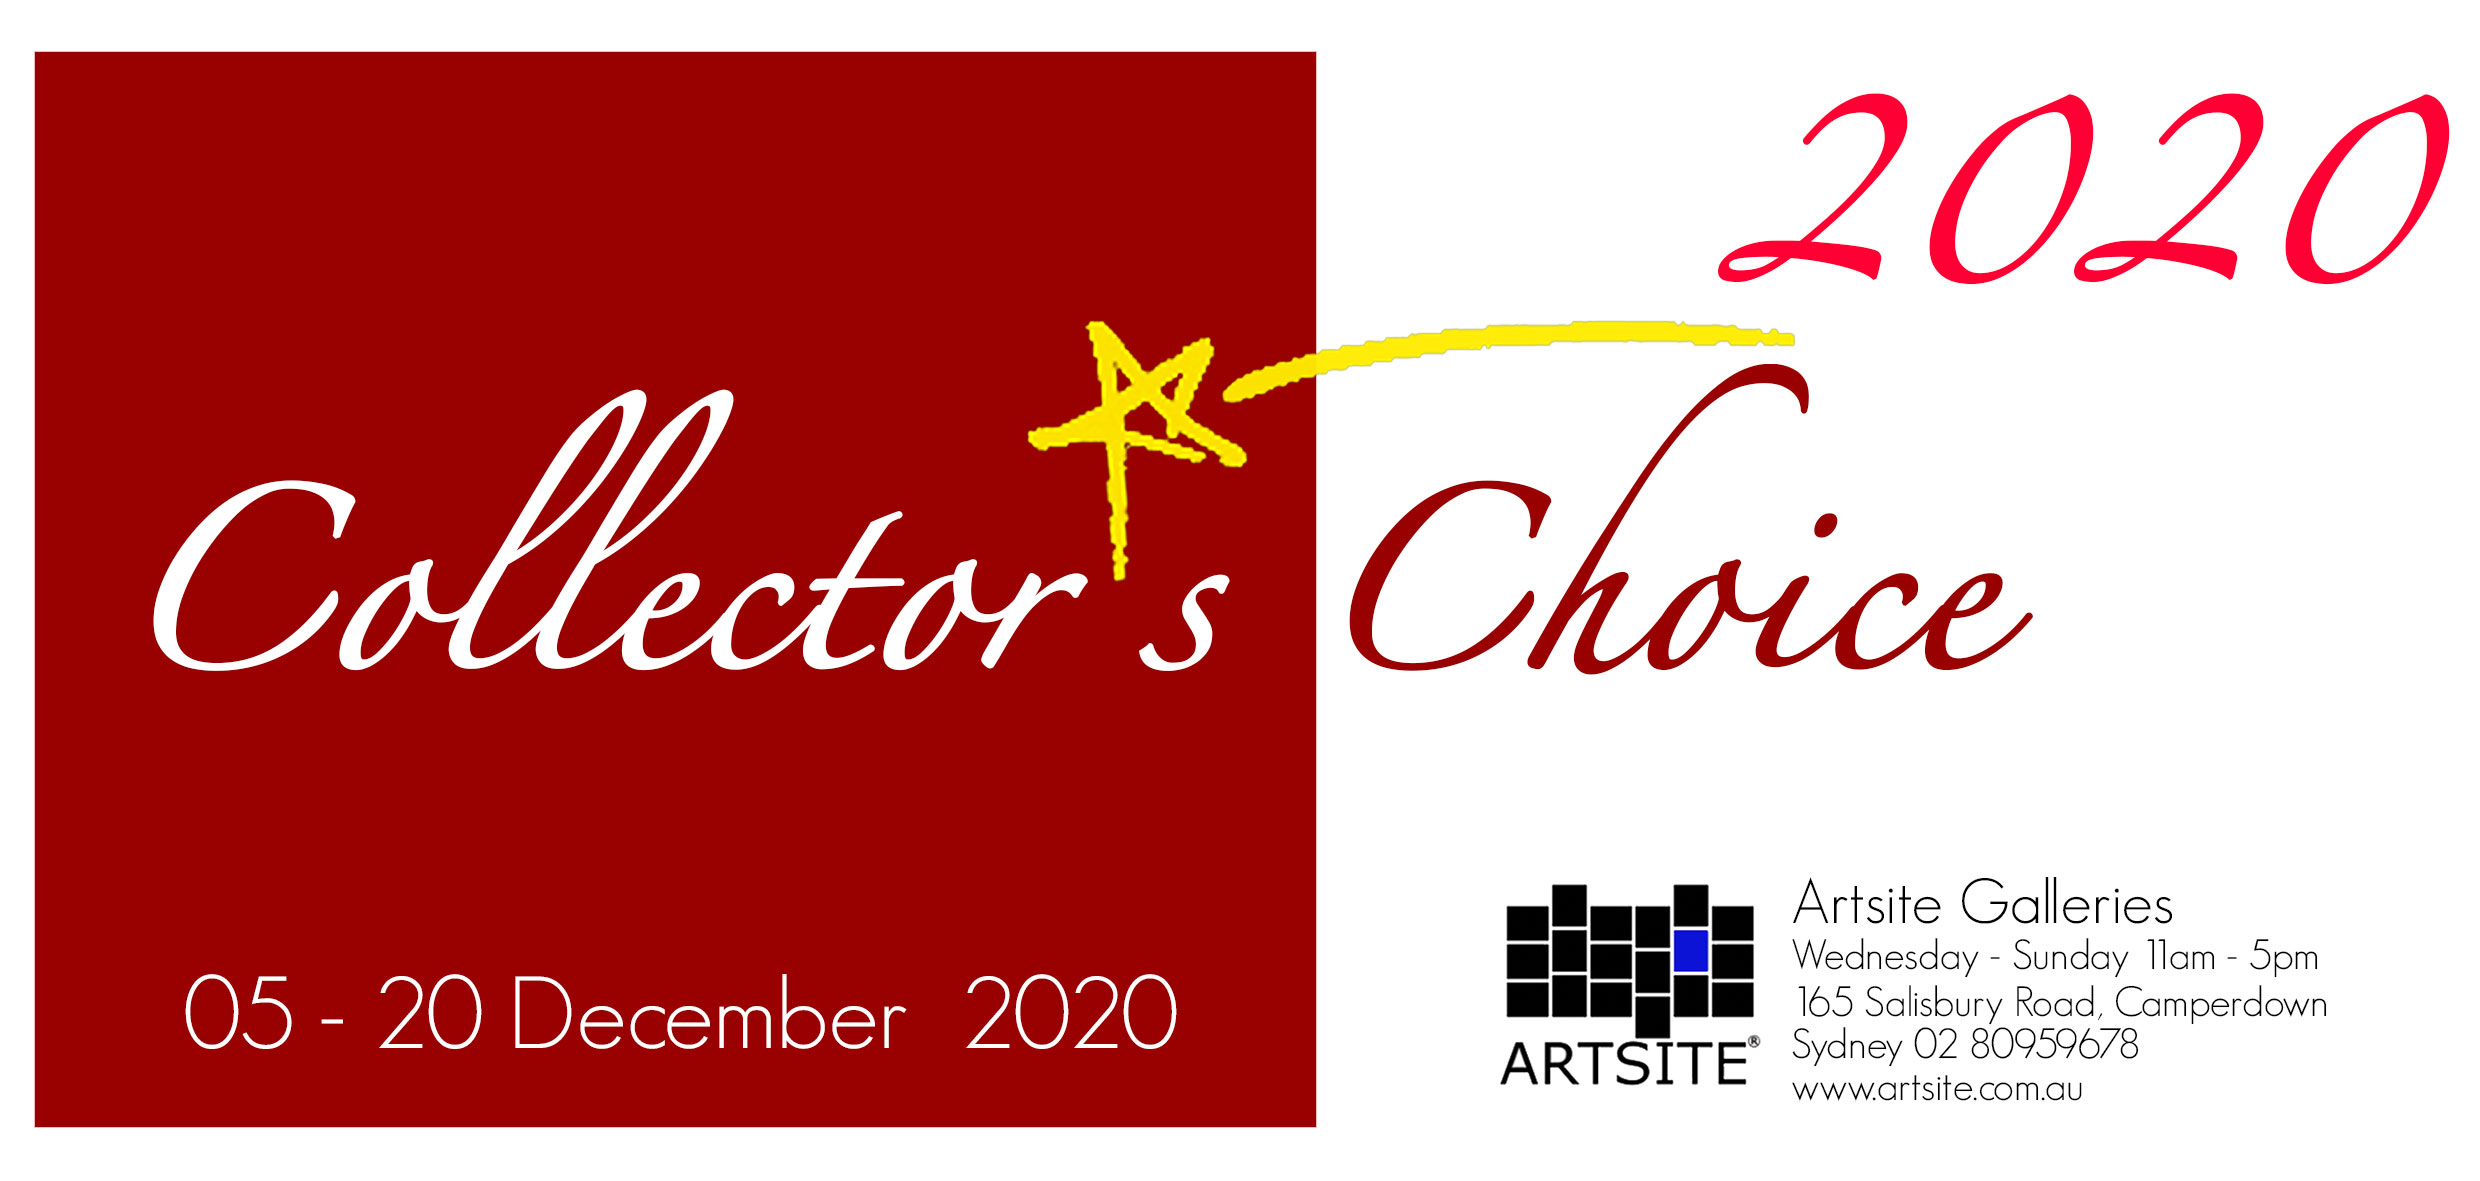 Artsite Galleries Exhibition | Collectors Choice 2020 | Gallery and Invited Artists | 05 - 20 December 2020. | Open Friday, Saturday and Sundays 11am - 5pm and By Appointment: Monday - Friday.